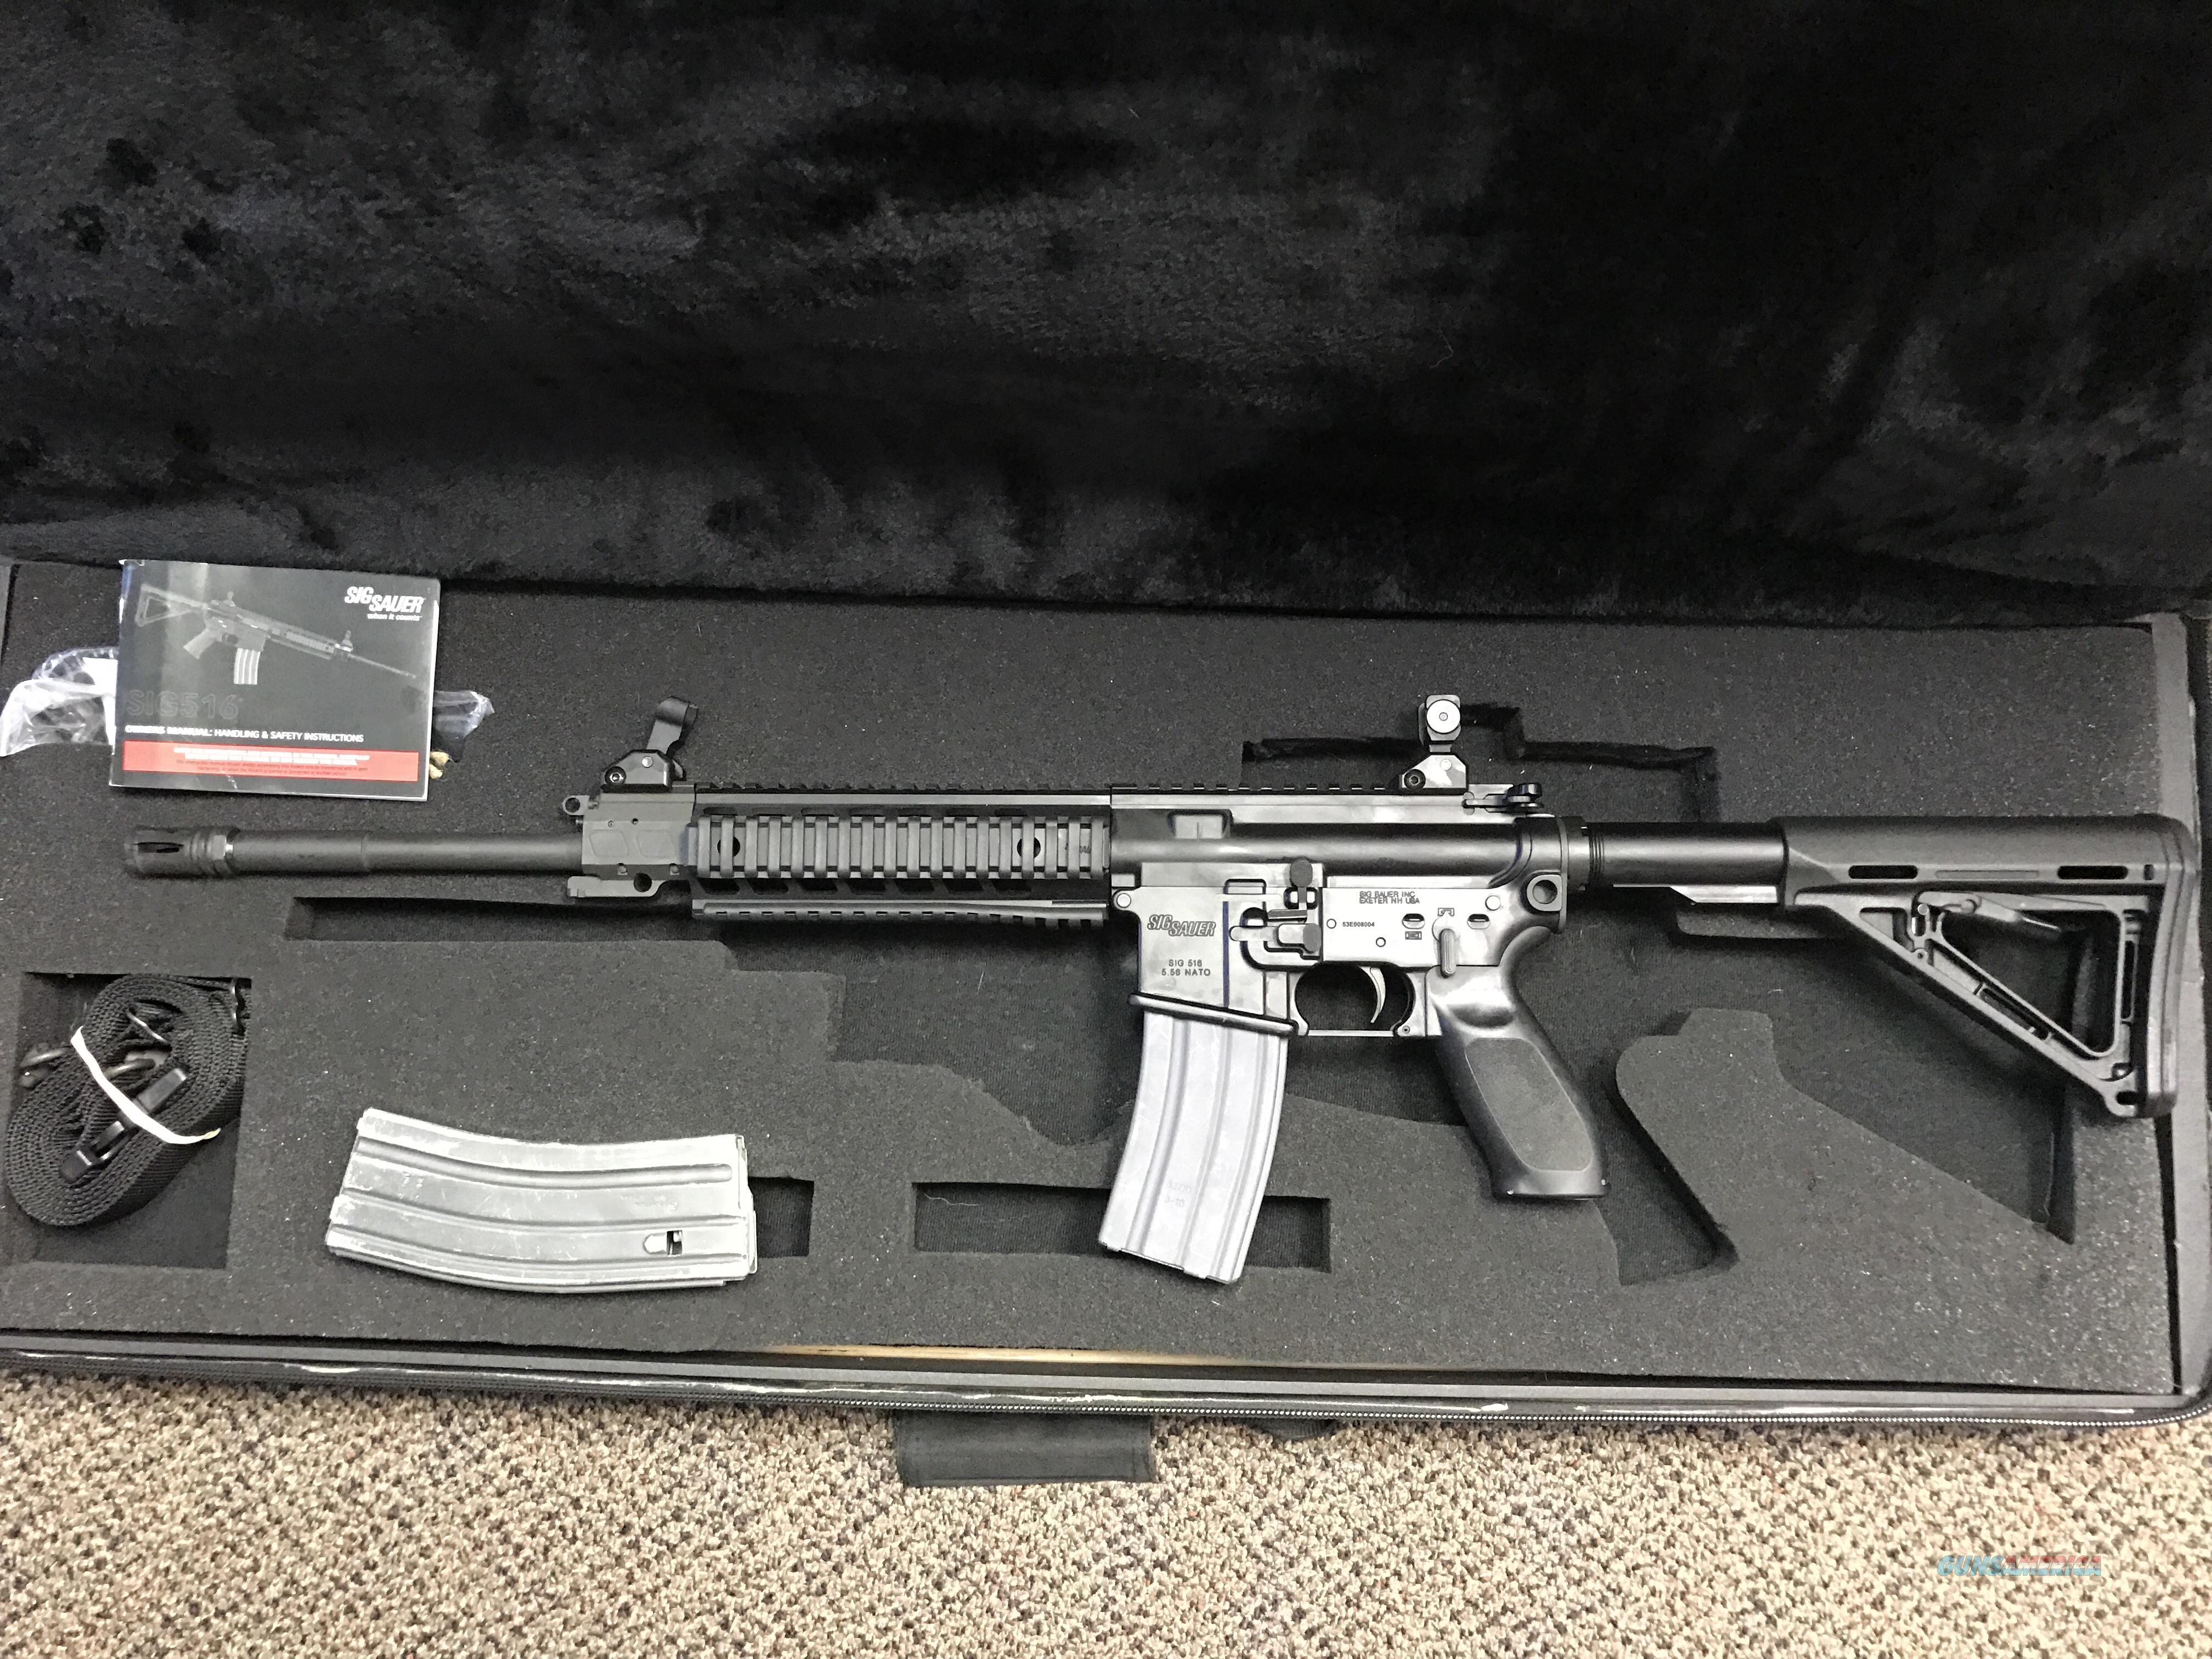 Sig Sauer 516 Patrol 5.56 with case  Guns > Rifles > AR-15 Rifles - Small Manufacturers > Complete Rifle